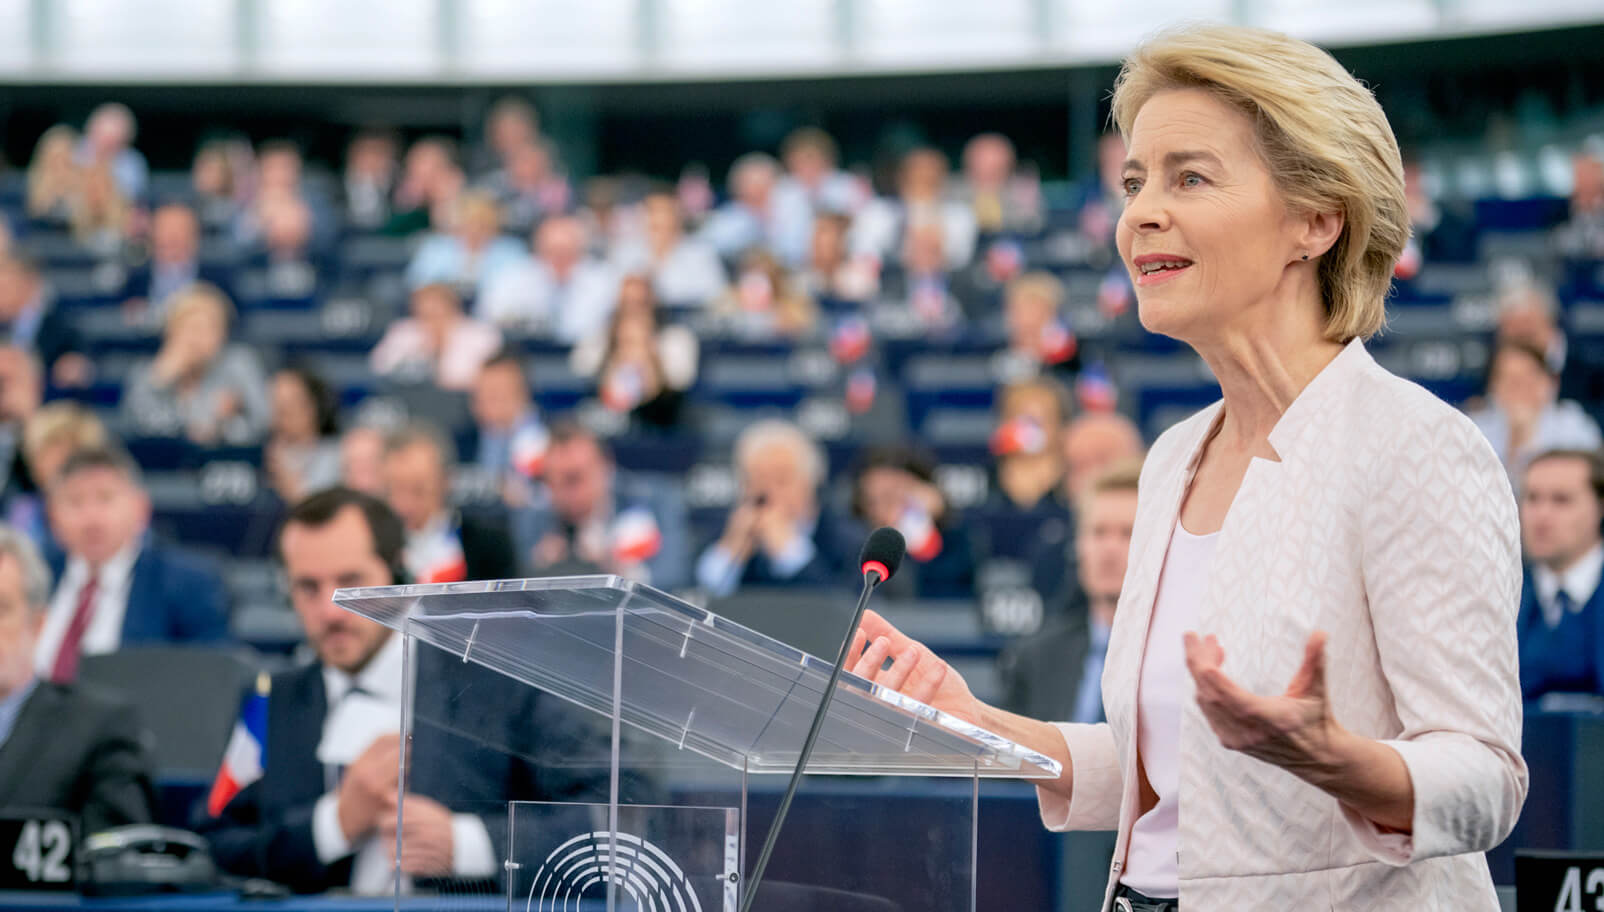 Ursula von der Leyen, president of the European Commission, recently announced the plans for the new European Bauhaus | European Bauhaus | European Commission | STIRworld